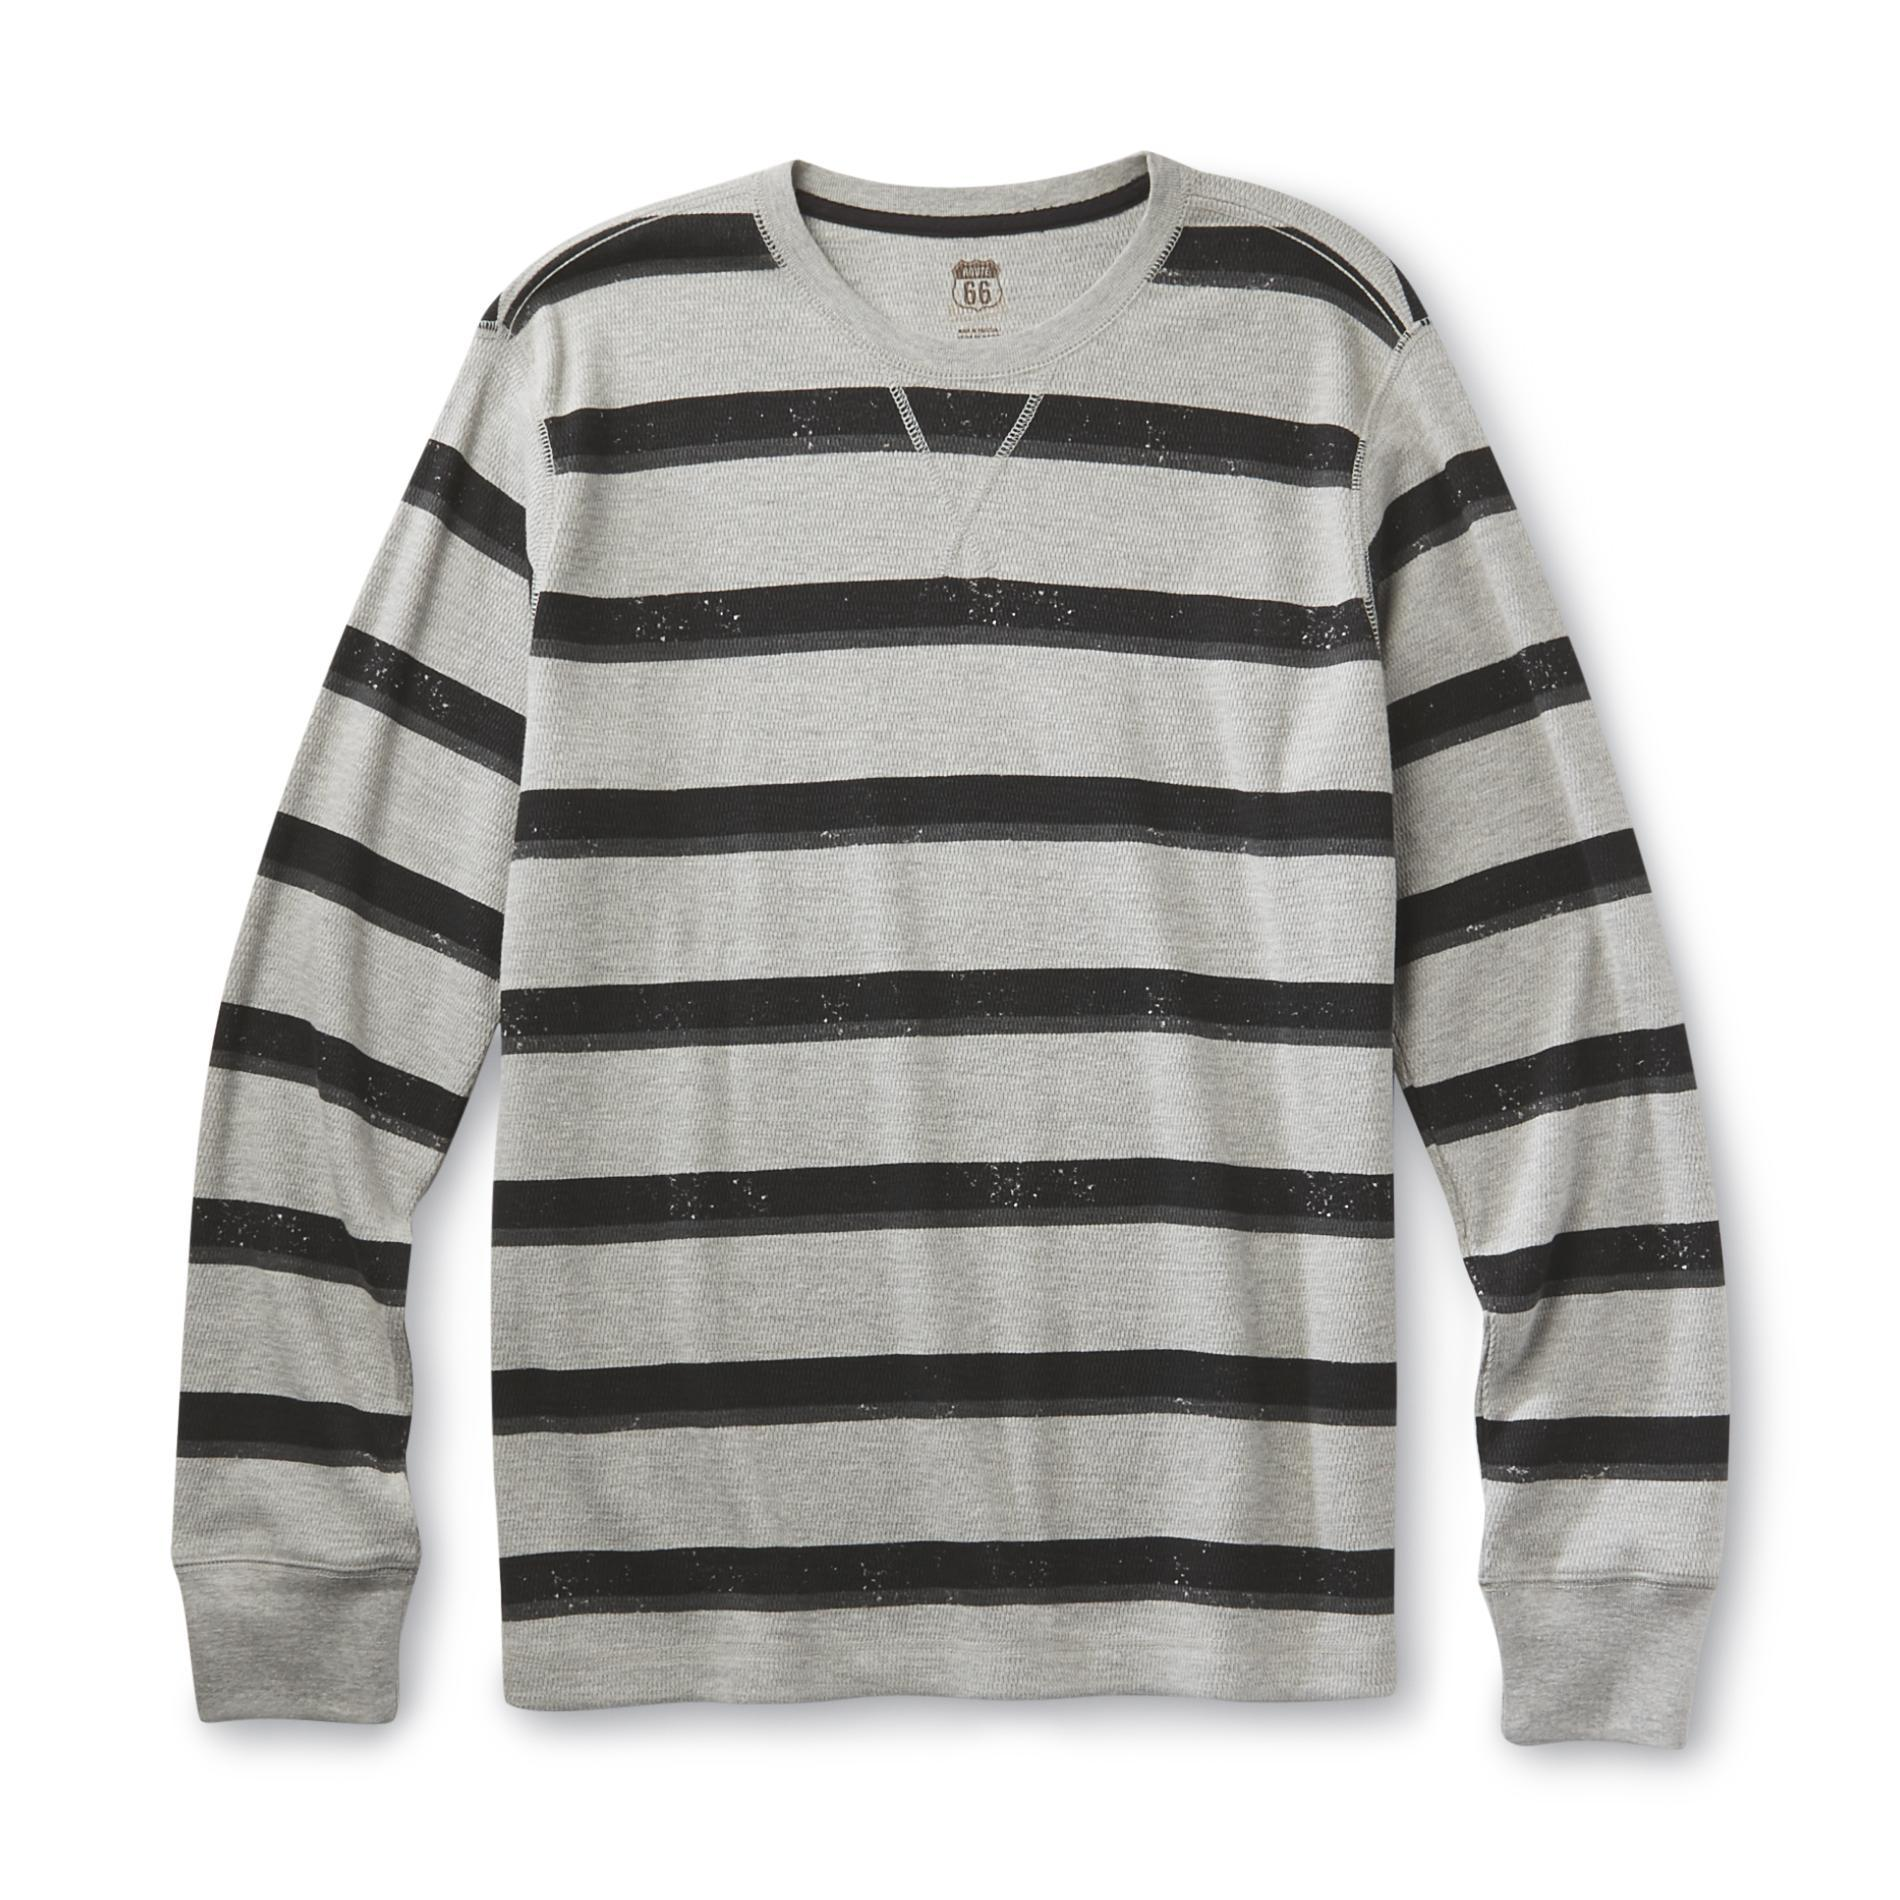 Men's Thermal Shirt - Stripes